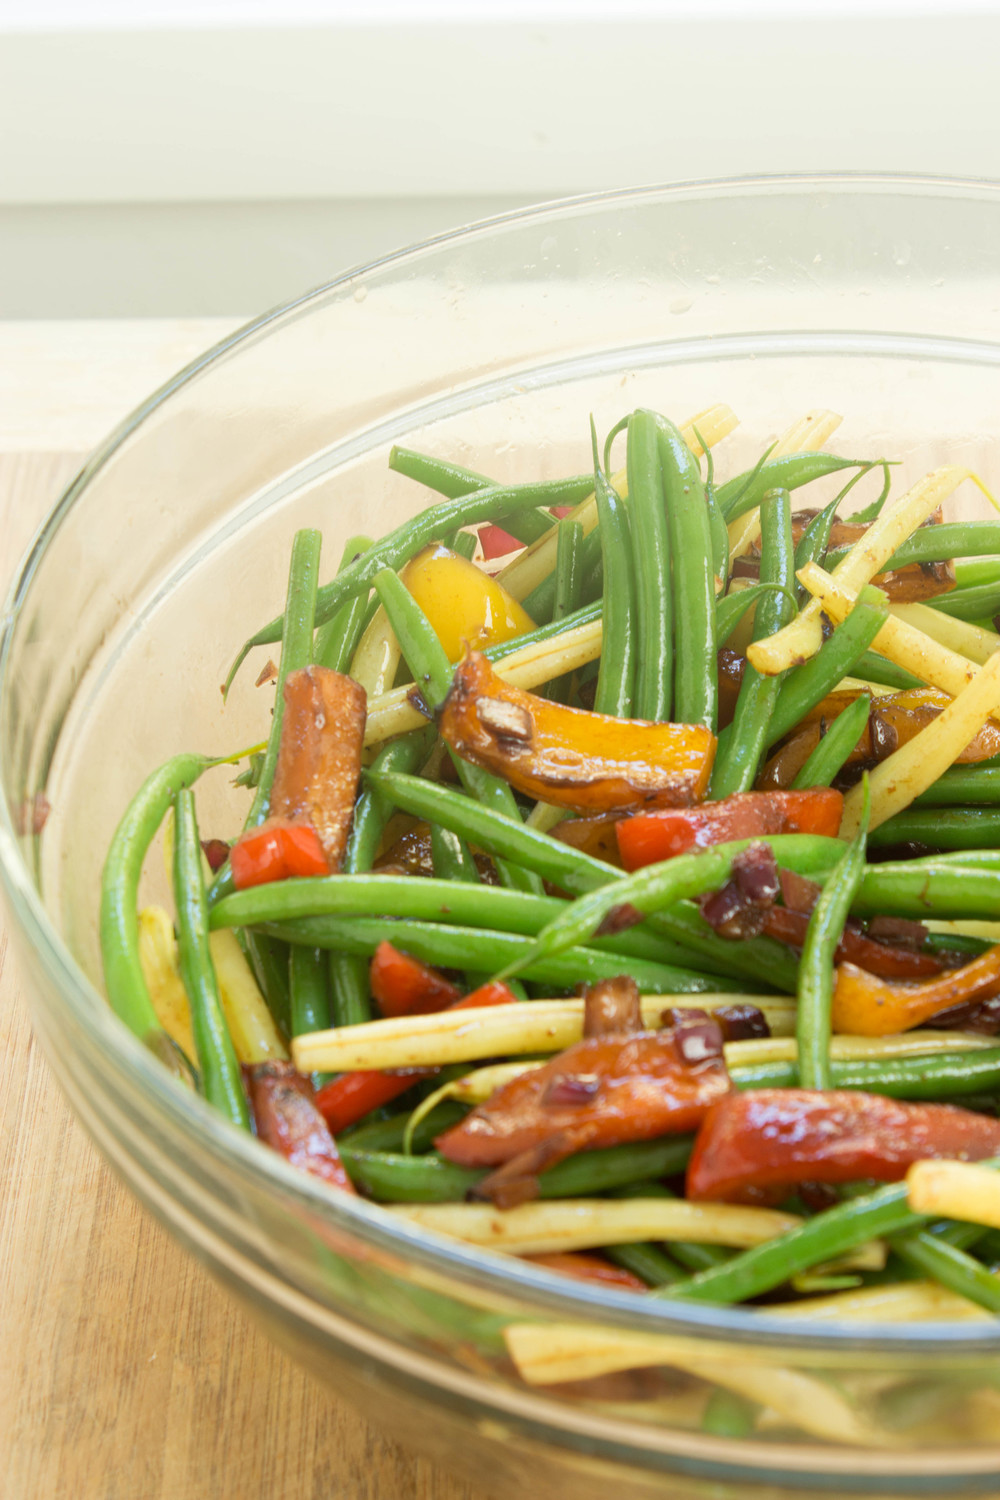 haricots-verts-w-balsamic-peppers-onion-7